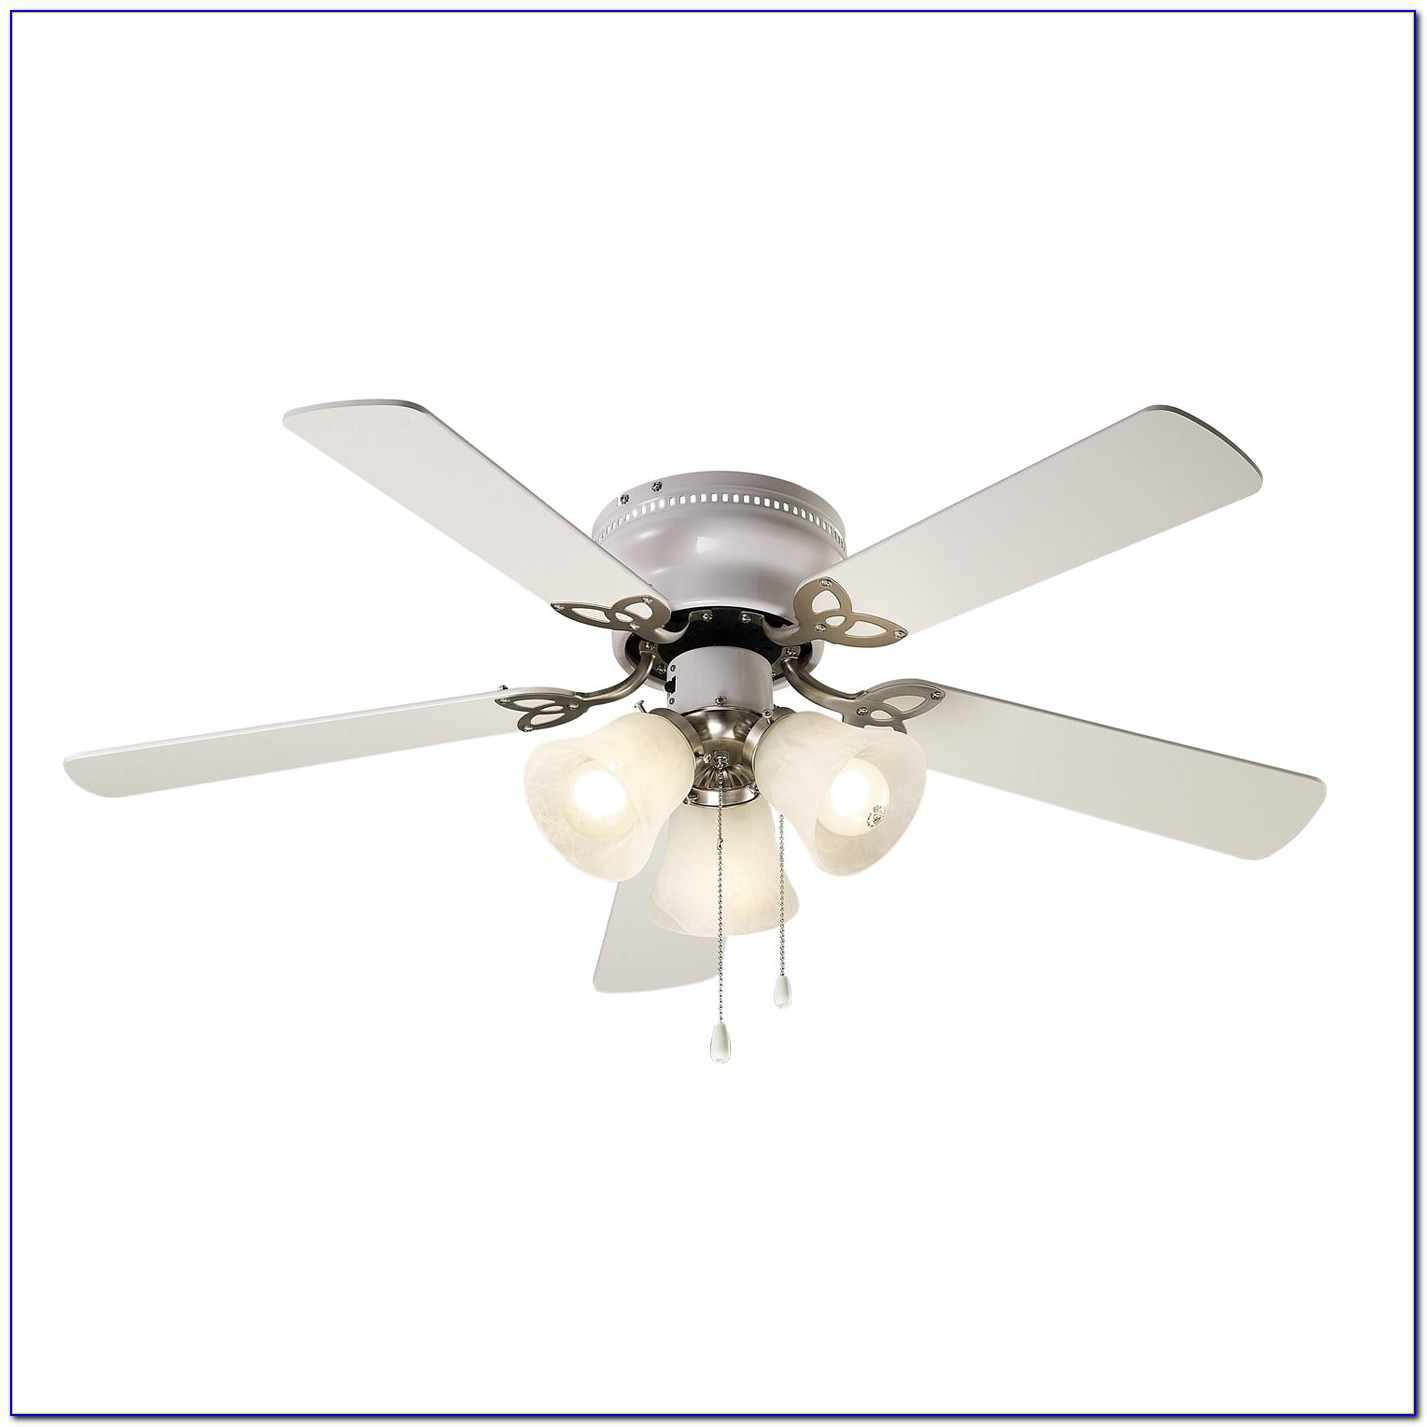 Harbor Breeze Ceiling Fan Lighting Kits